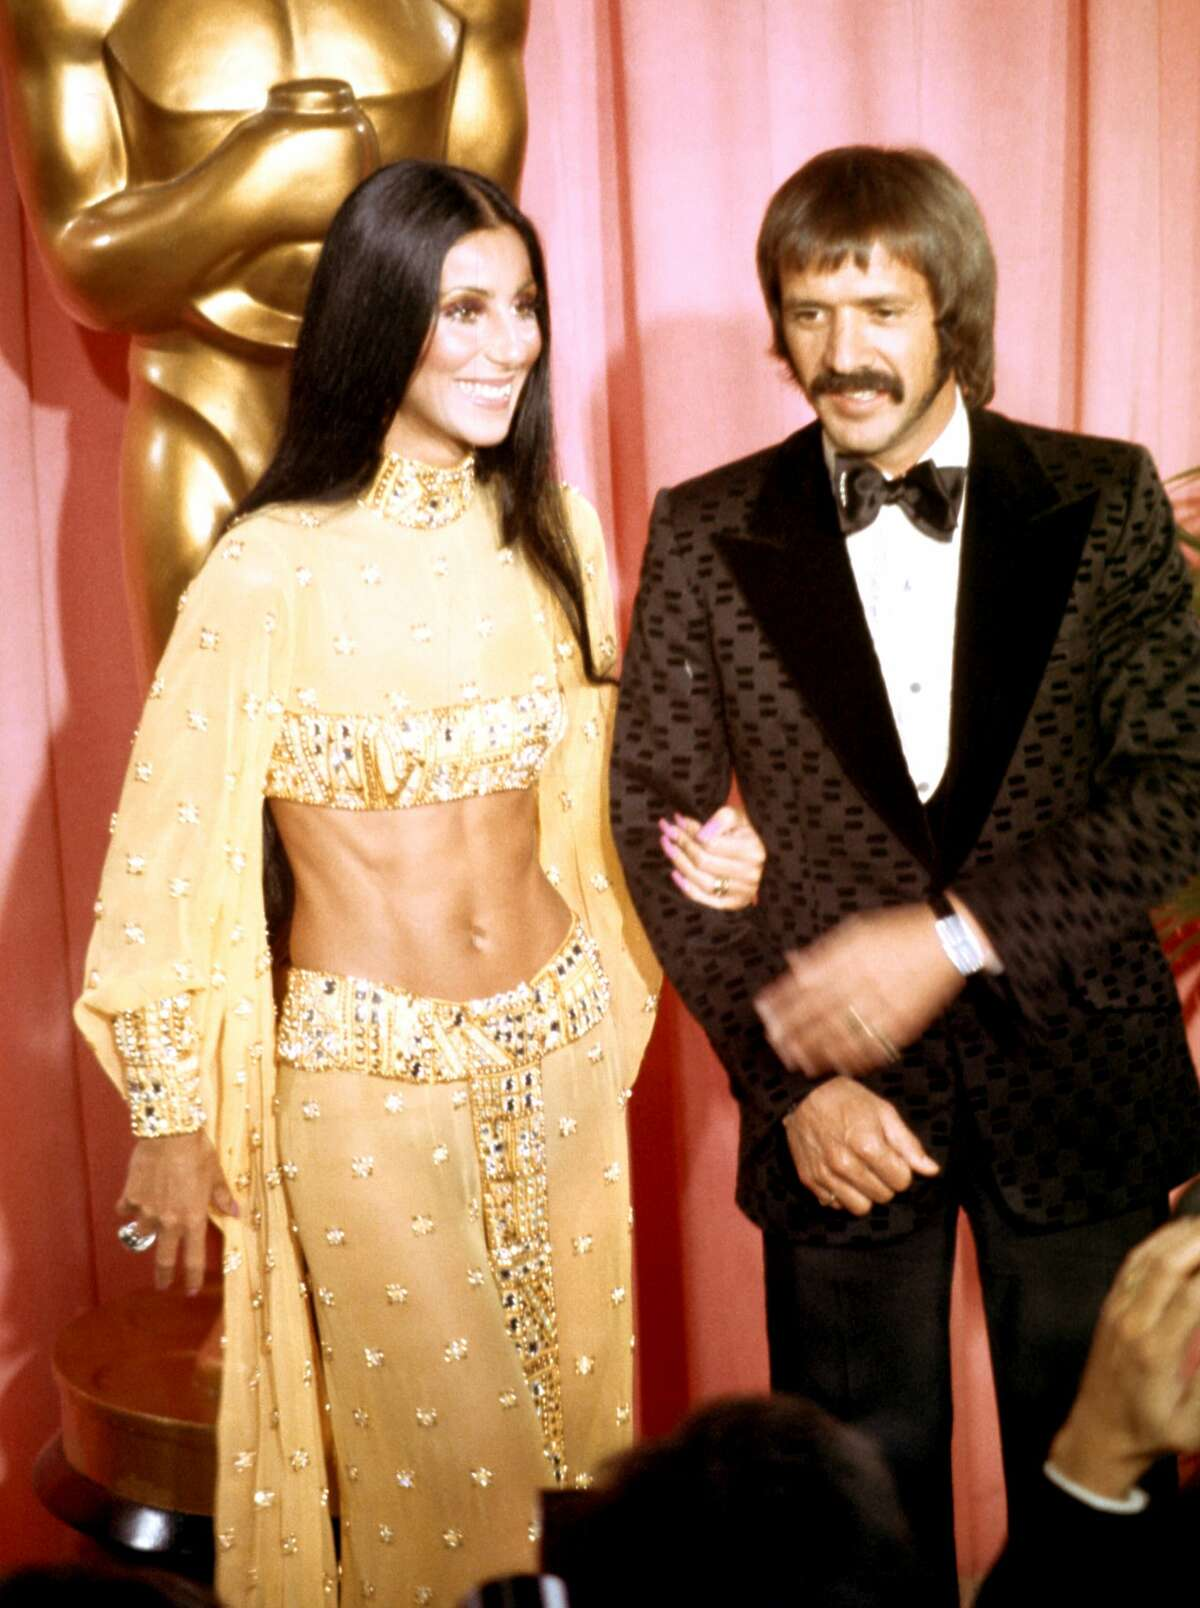 Sonny Bono and Cher attend the Academy Awards ceremony on March 27, 1973. The couple divorced in 1975. Keep clicking to see more throwback couples at the Academy Awards.